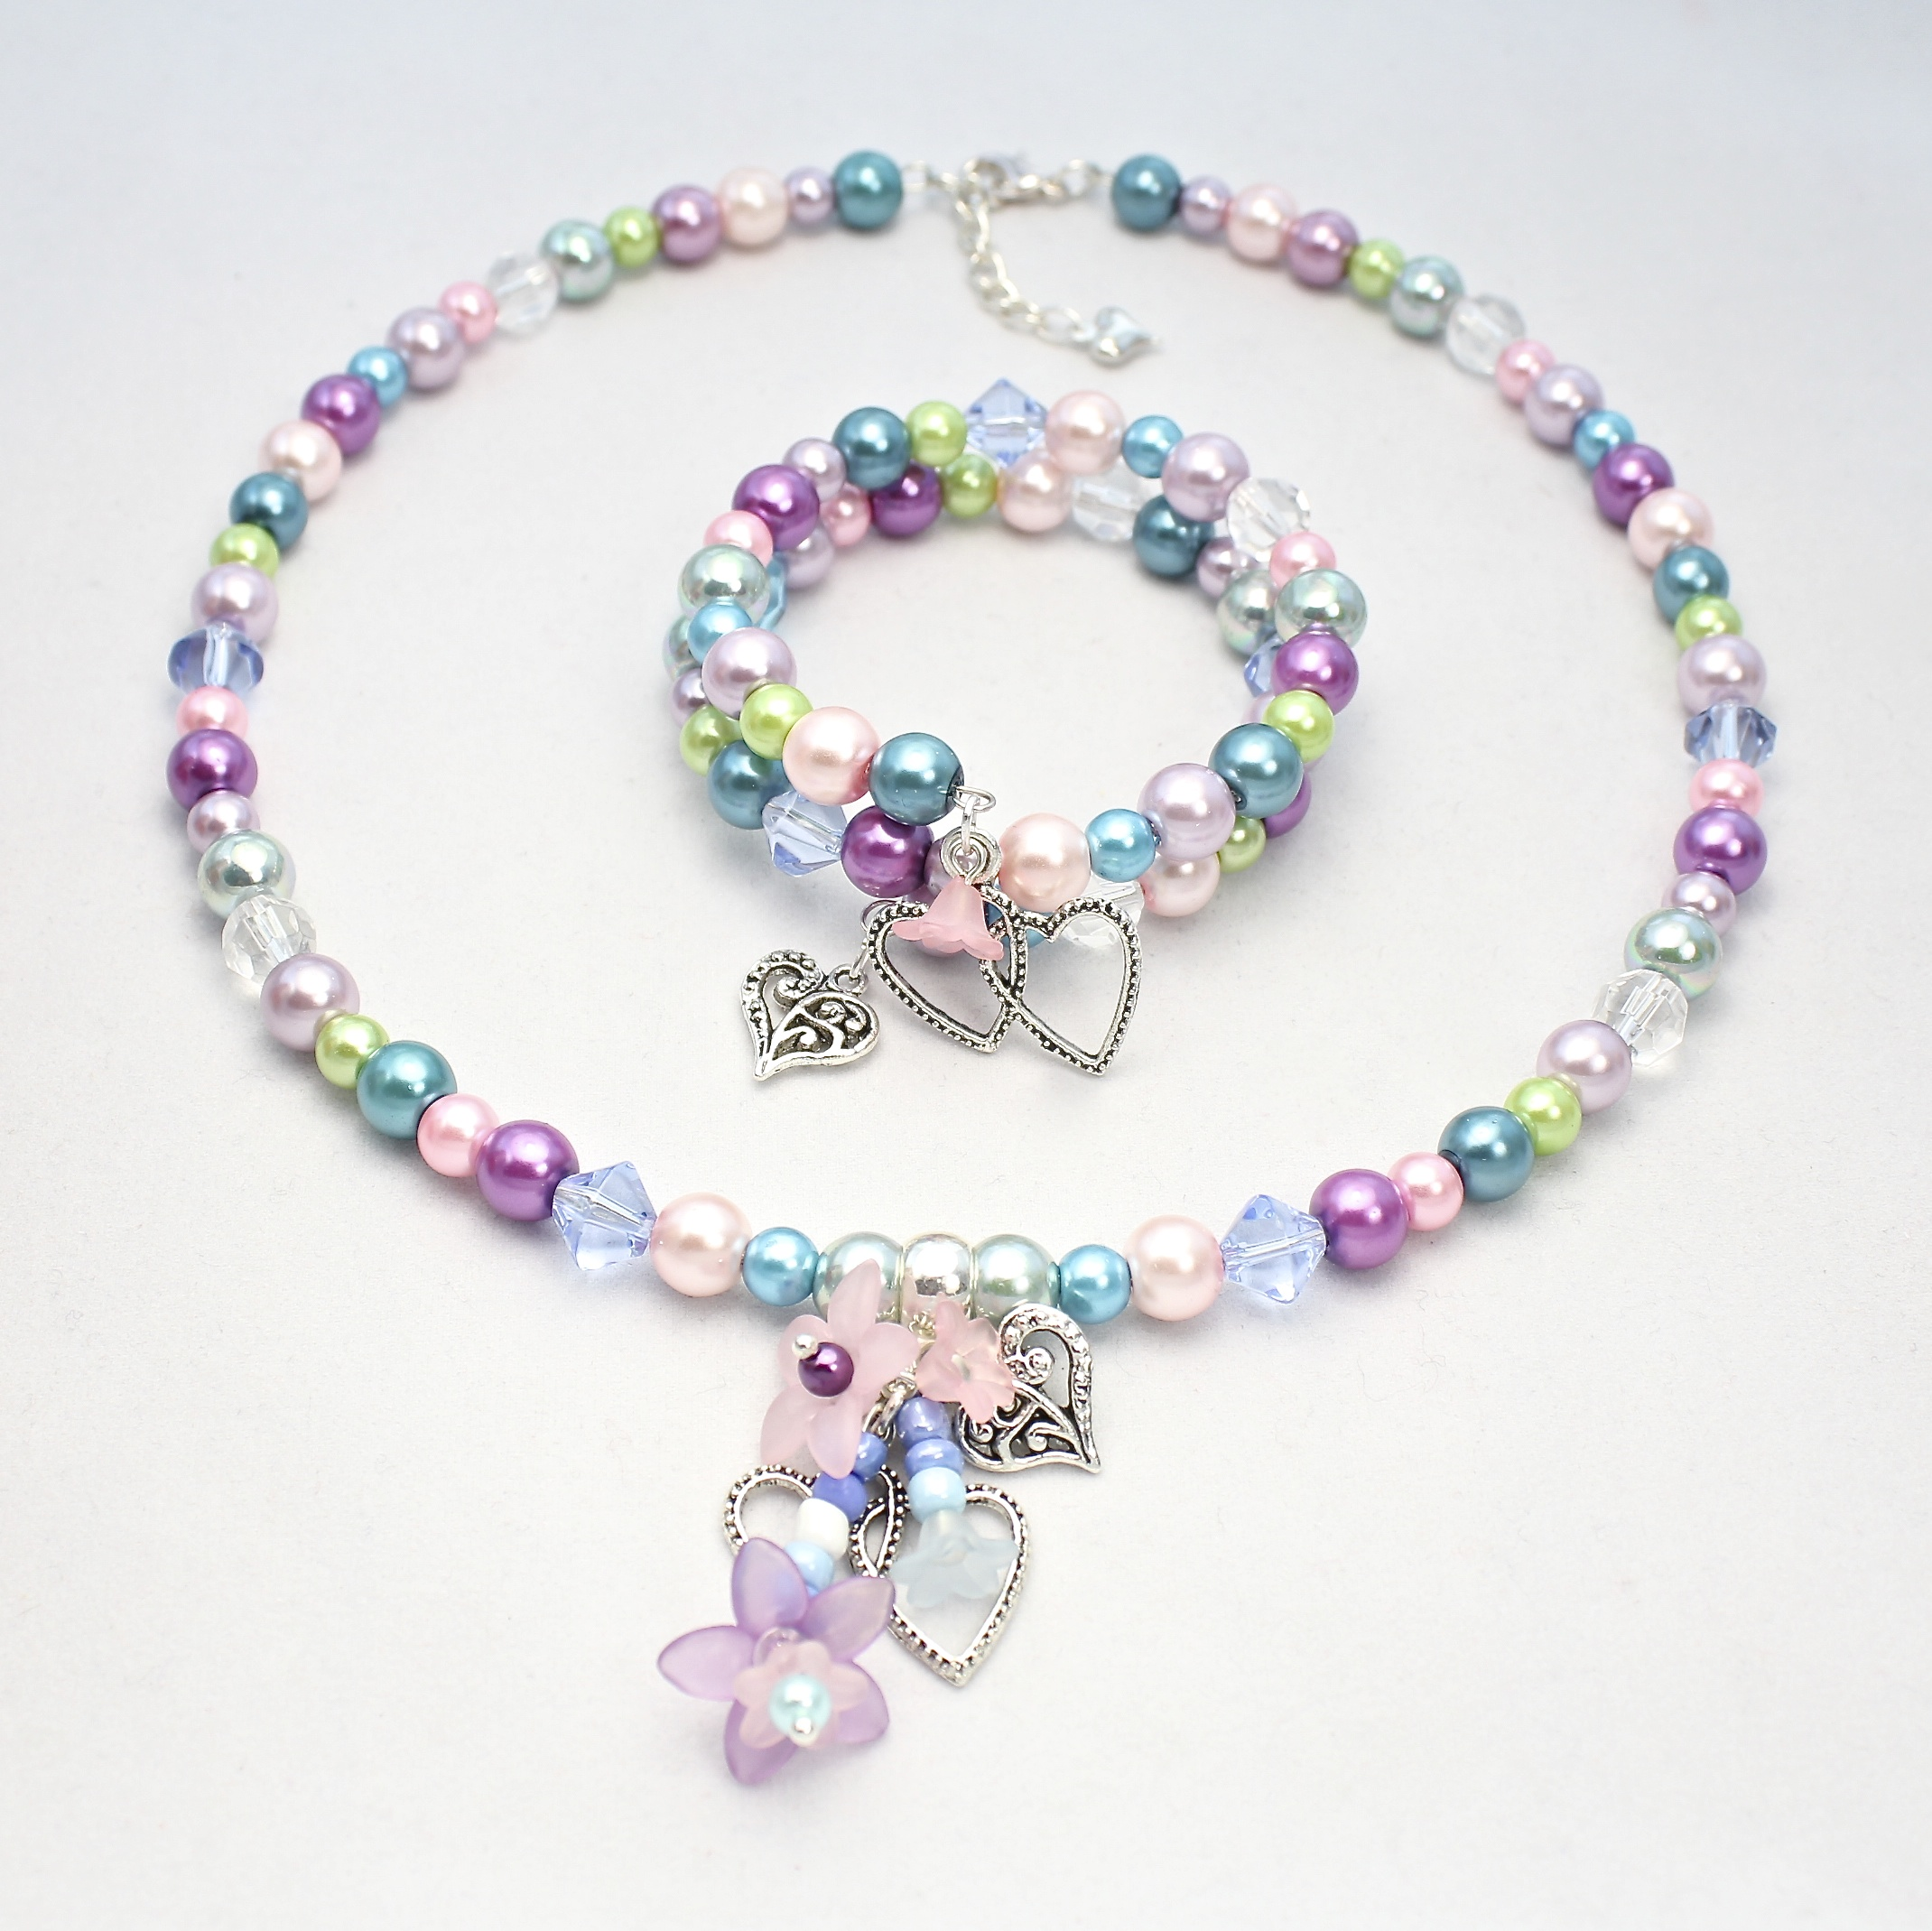 Waterfall Beads Jewellery Making Parties & Kits for Girls ...